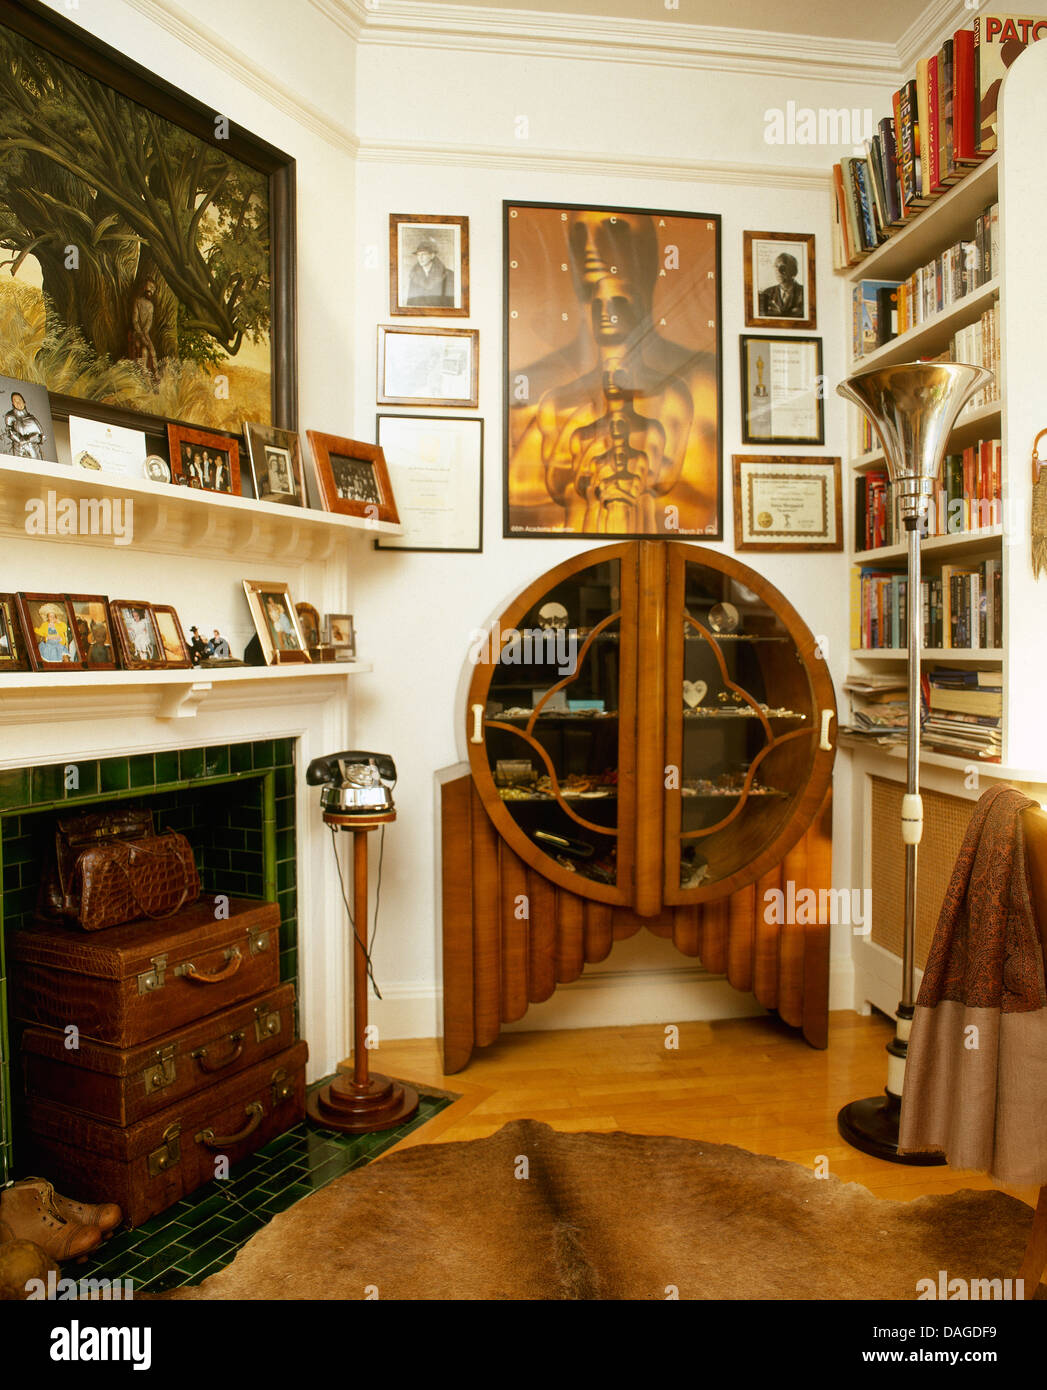 Art Deco Cabinet In Living Room With Old Leather Suitcases